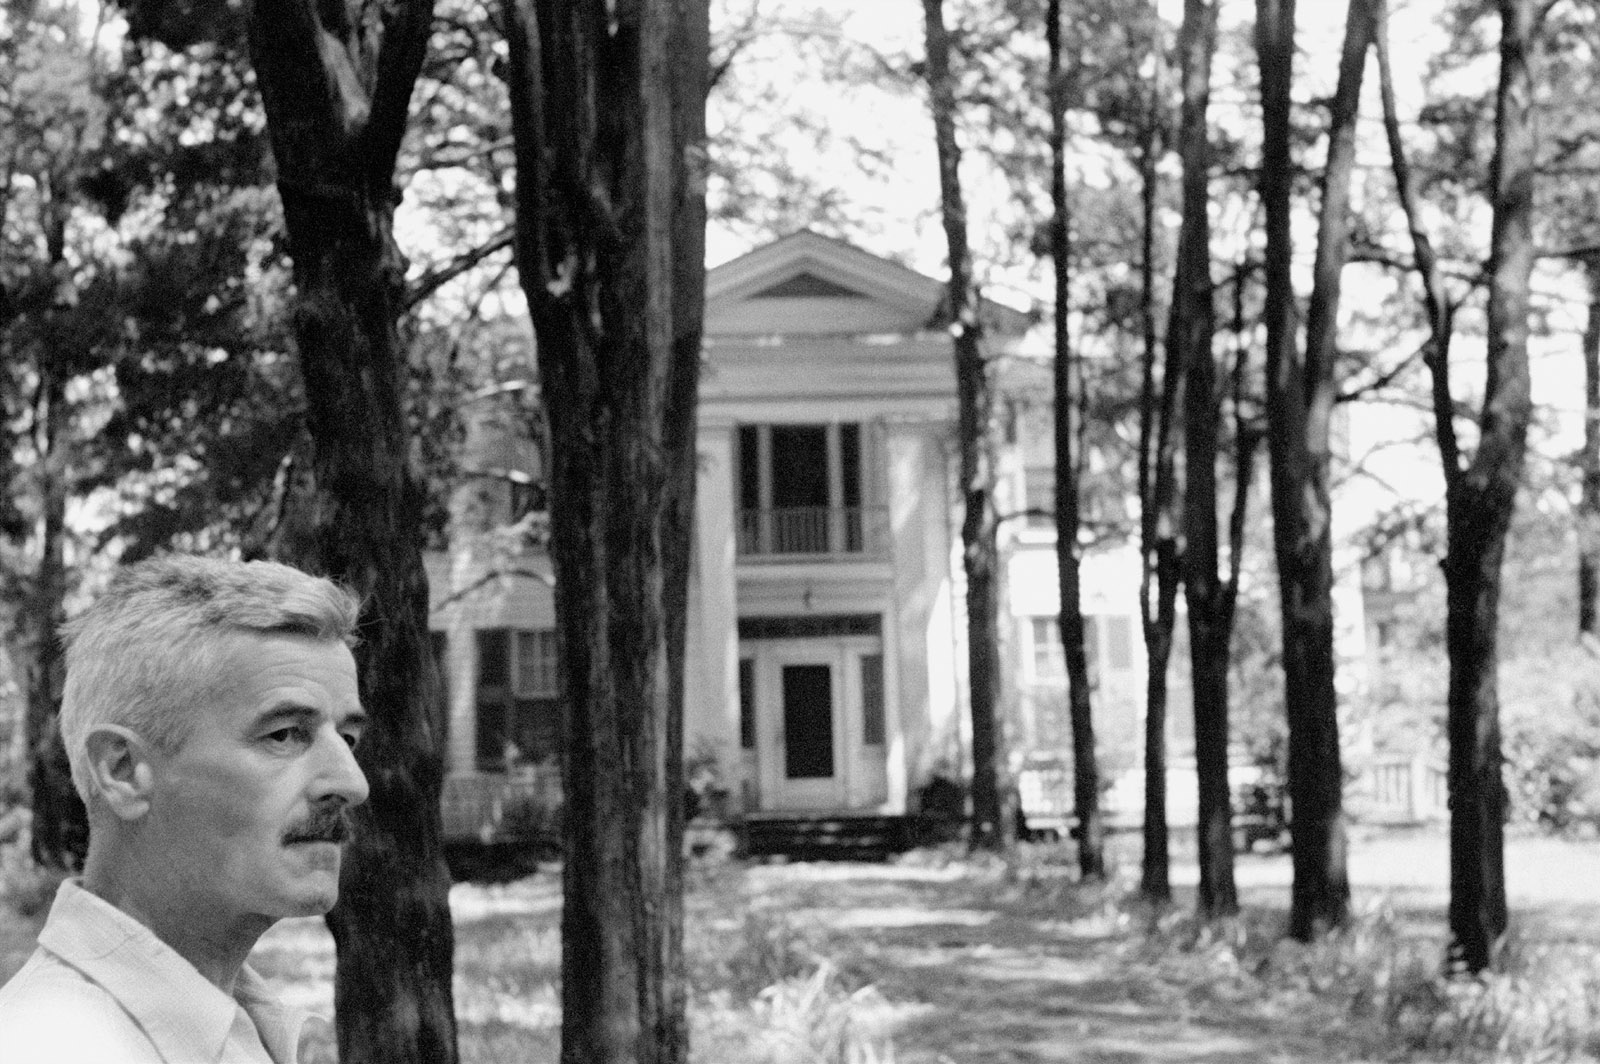 an analysis of black slavery in william faulkner works William faulkner – southerner in a  william faulkner's works exhibit a penchant for  an analysis of faulkner's works reveals that the author.